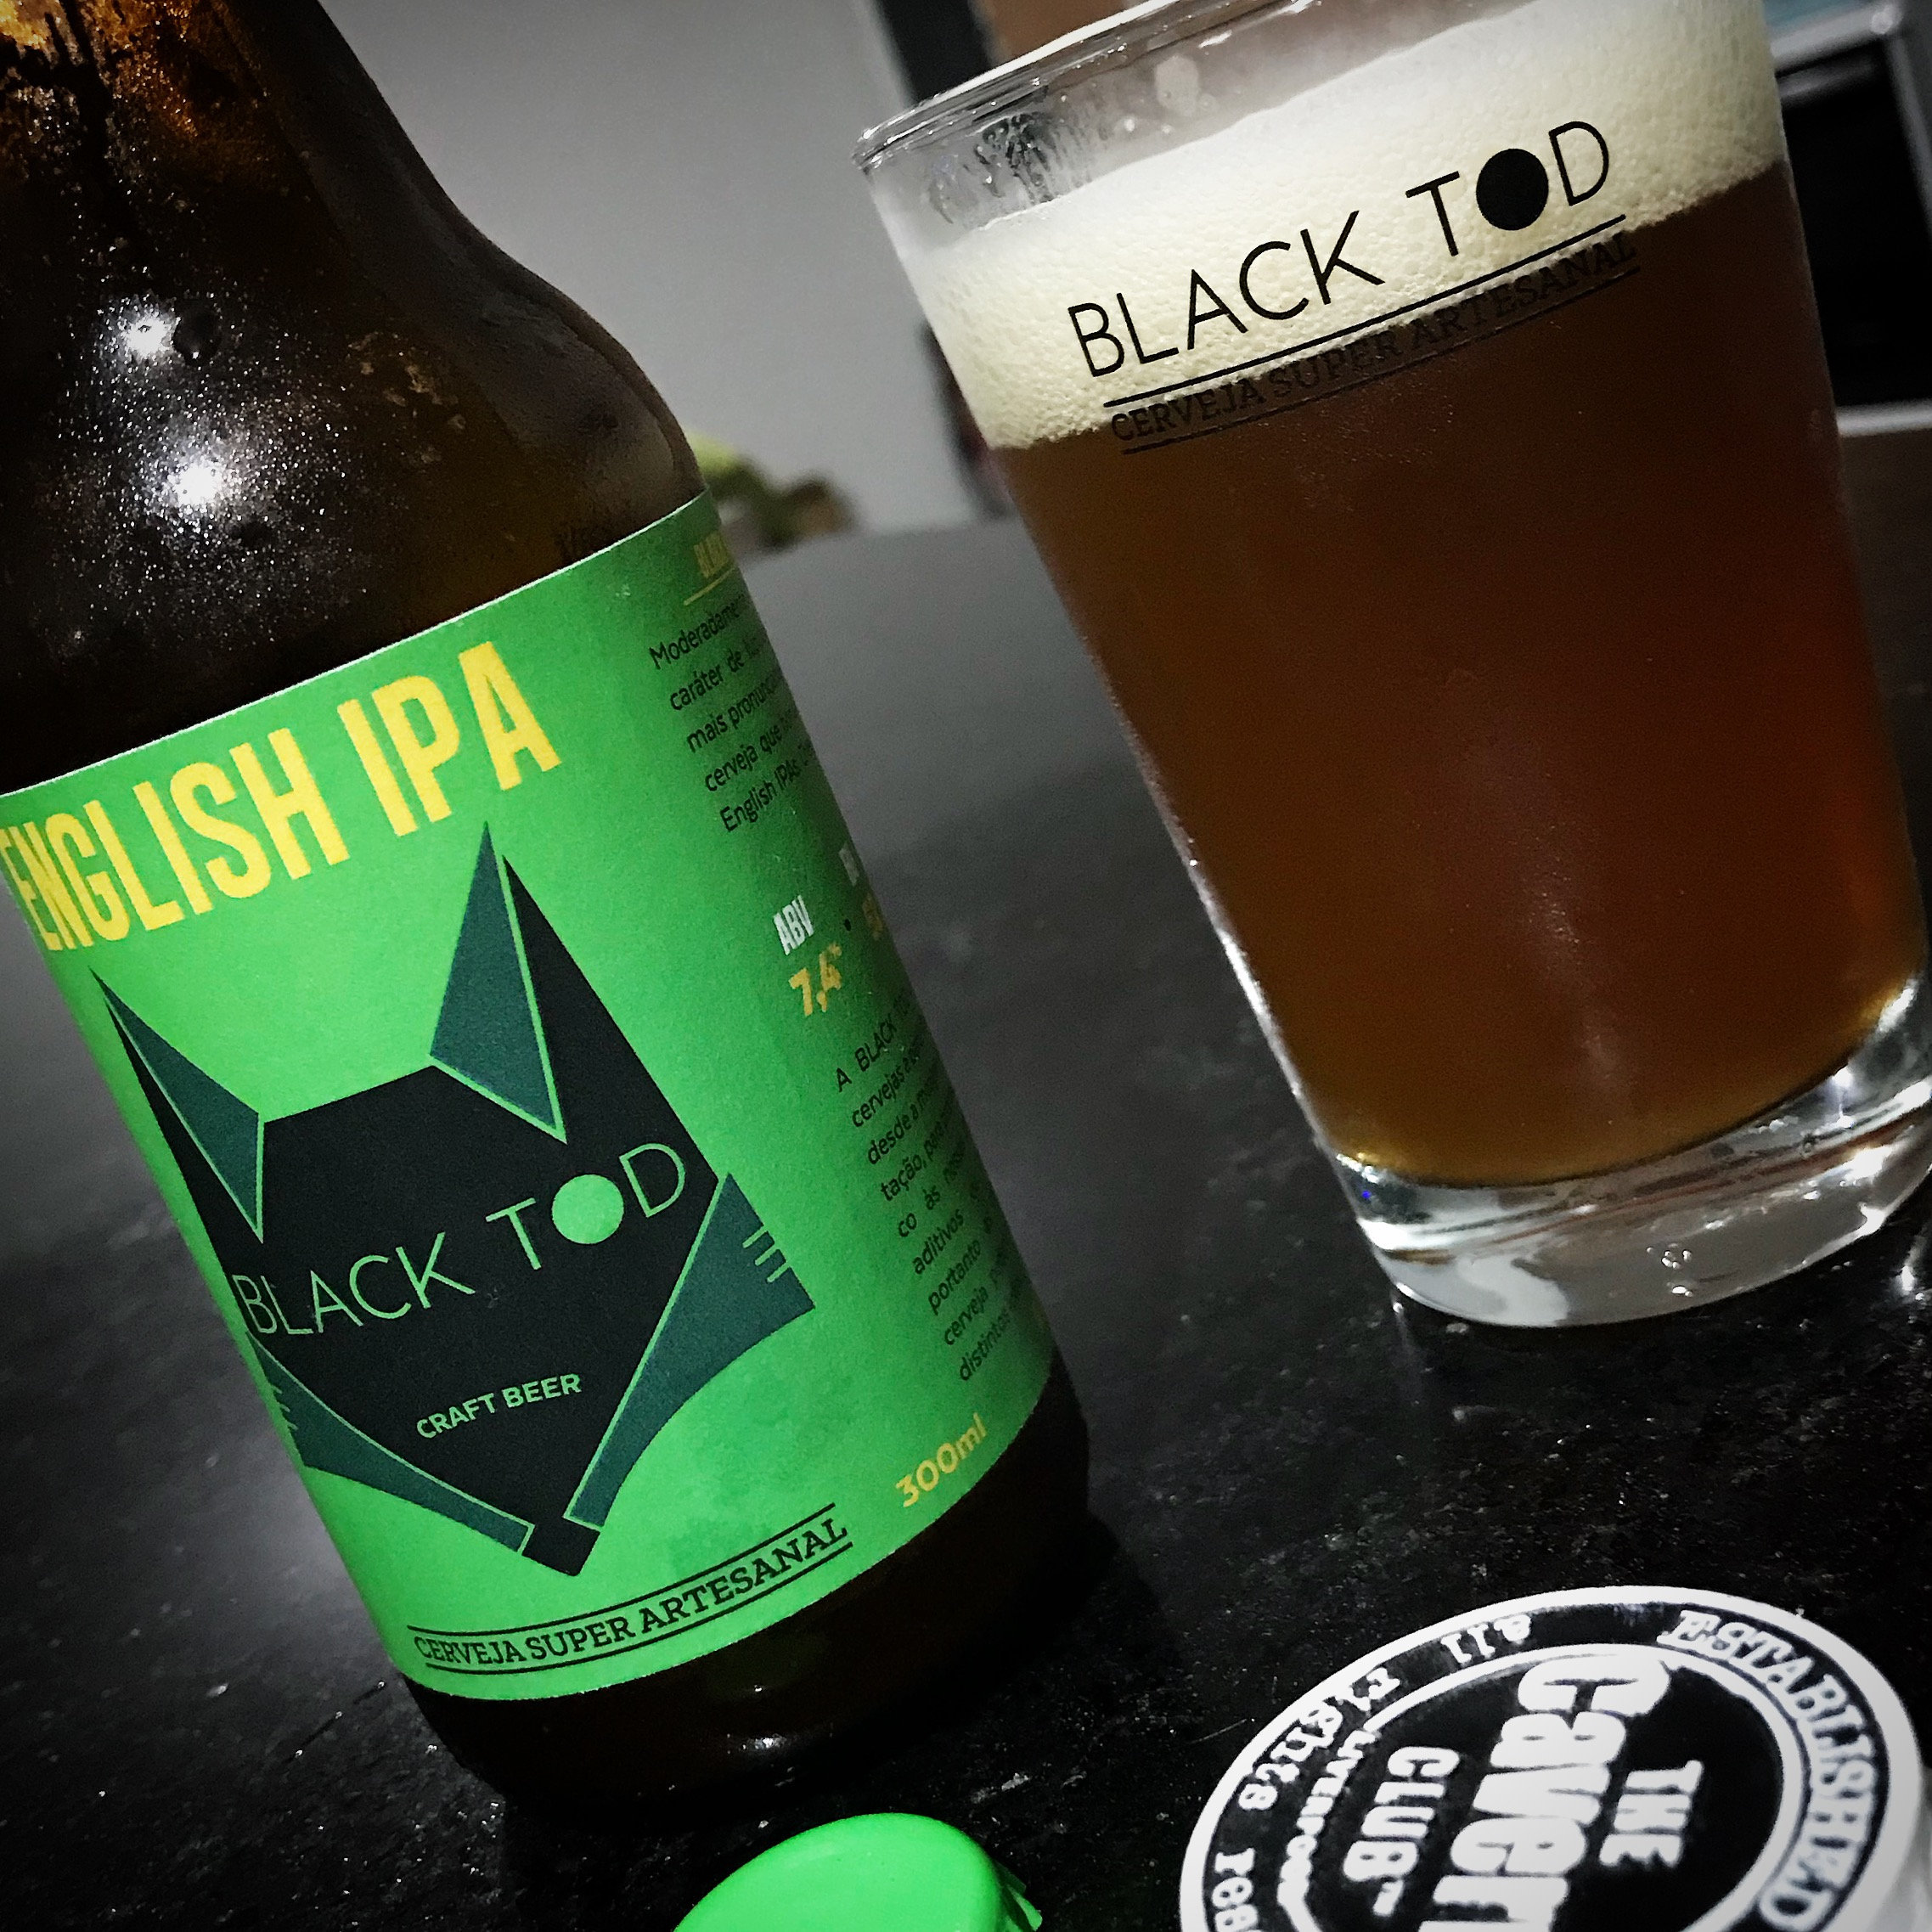 BLACK TOD English IPA